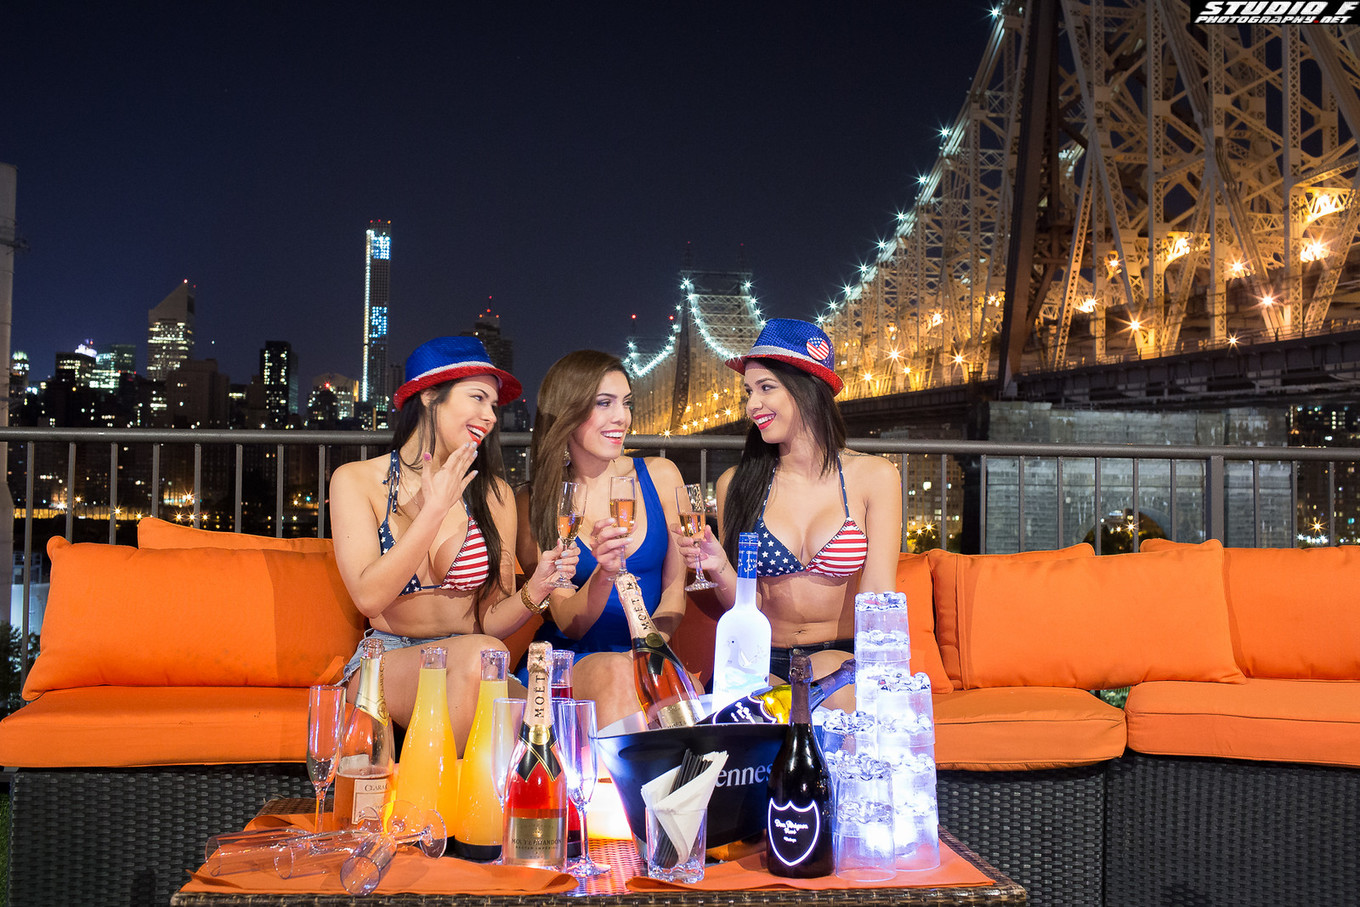 f3777954d65 Ravel Penthouse 808 MDW 2019 Rooftop Party Everyone FREE (Gametight) -  Tickets - Ravel Hotel